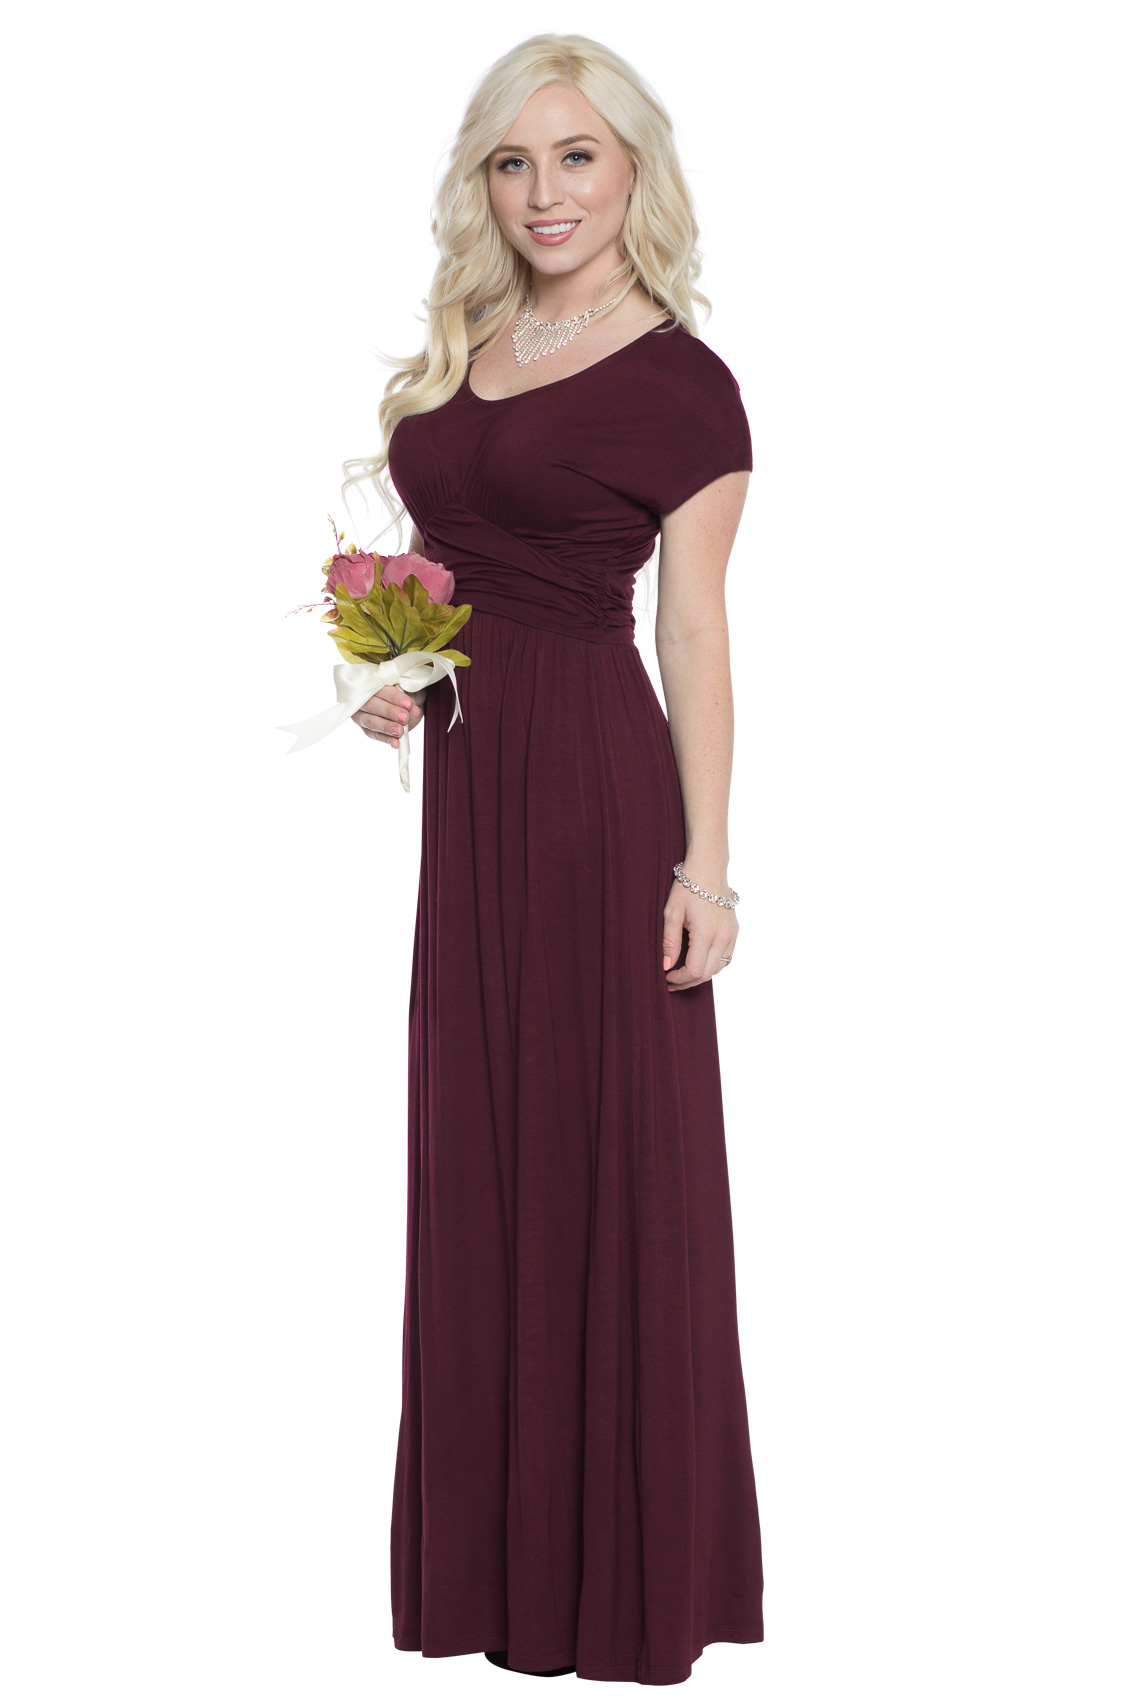 Modest bridesmaid dresses modest brides maid dresses modest athena modest maxi or bridesmaid dress in deep plum purple or burgundy plum ombrellifo Images